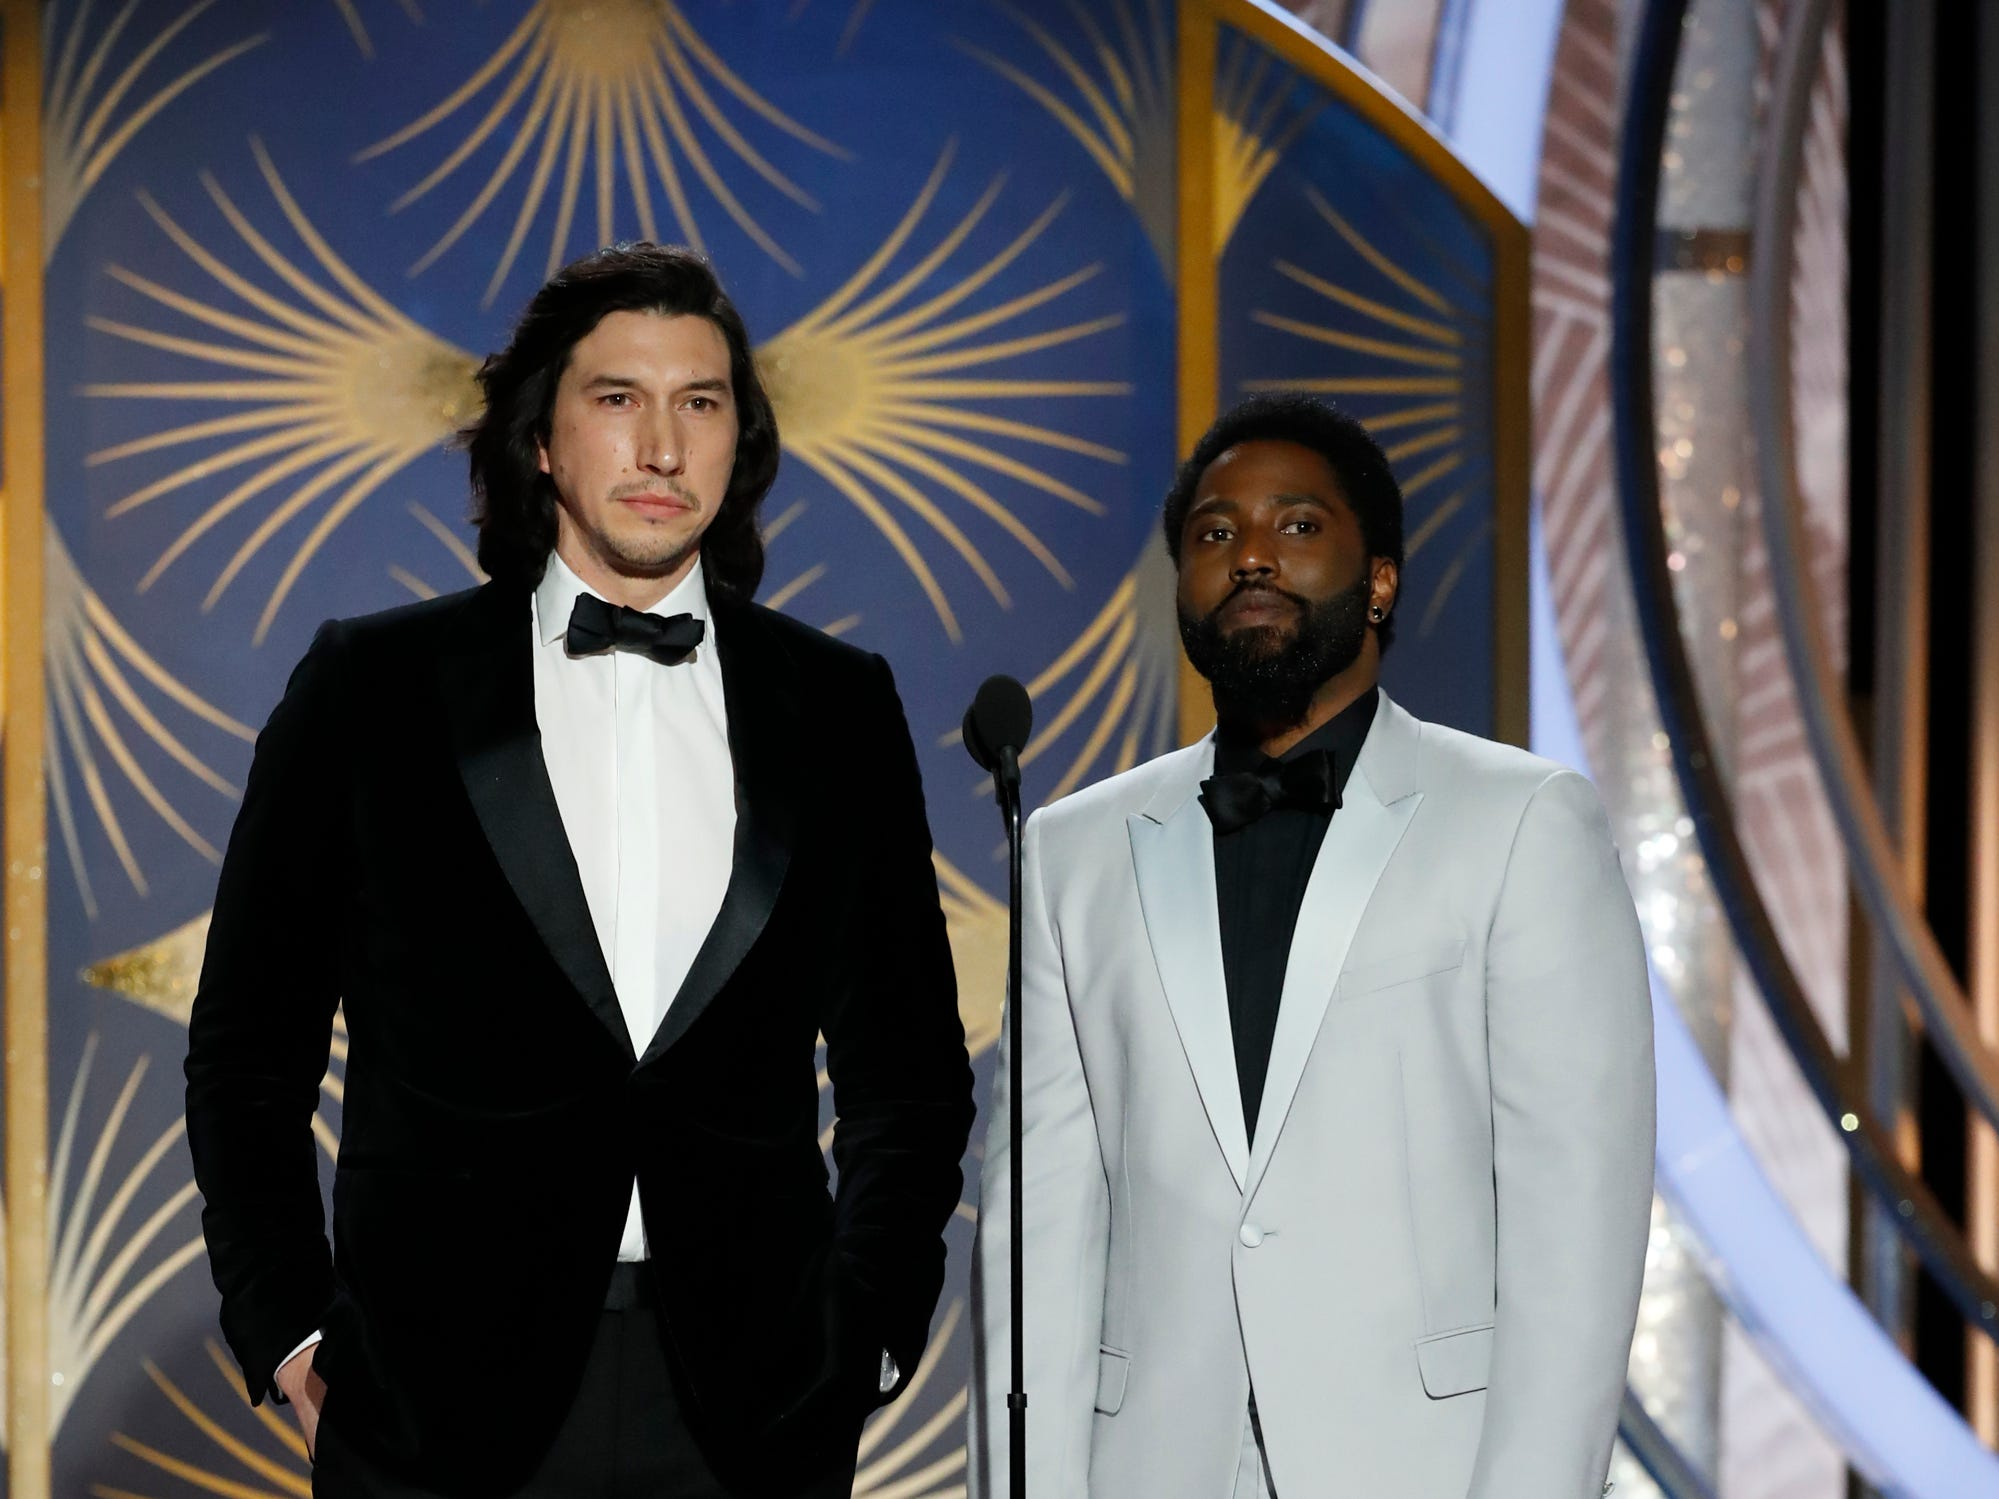 This image released by NBC shows presenters Adam Driver, left, and John David Washington during the 76th Annual Golden Globe Awards at the Beverly Hilton Hotel.